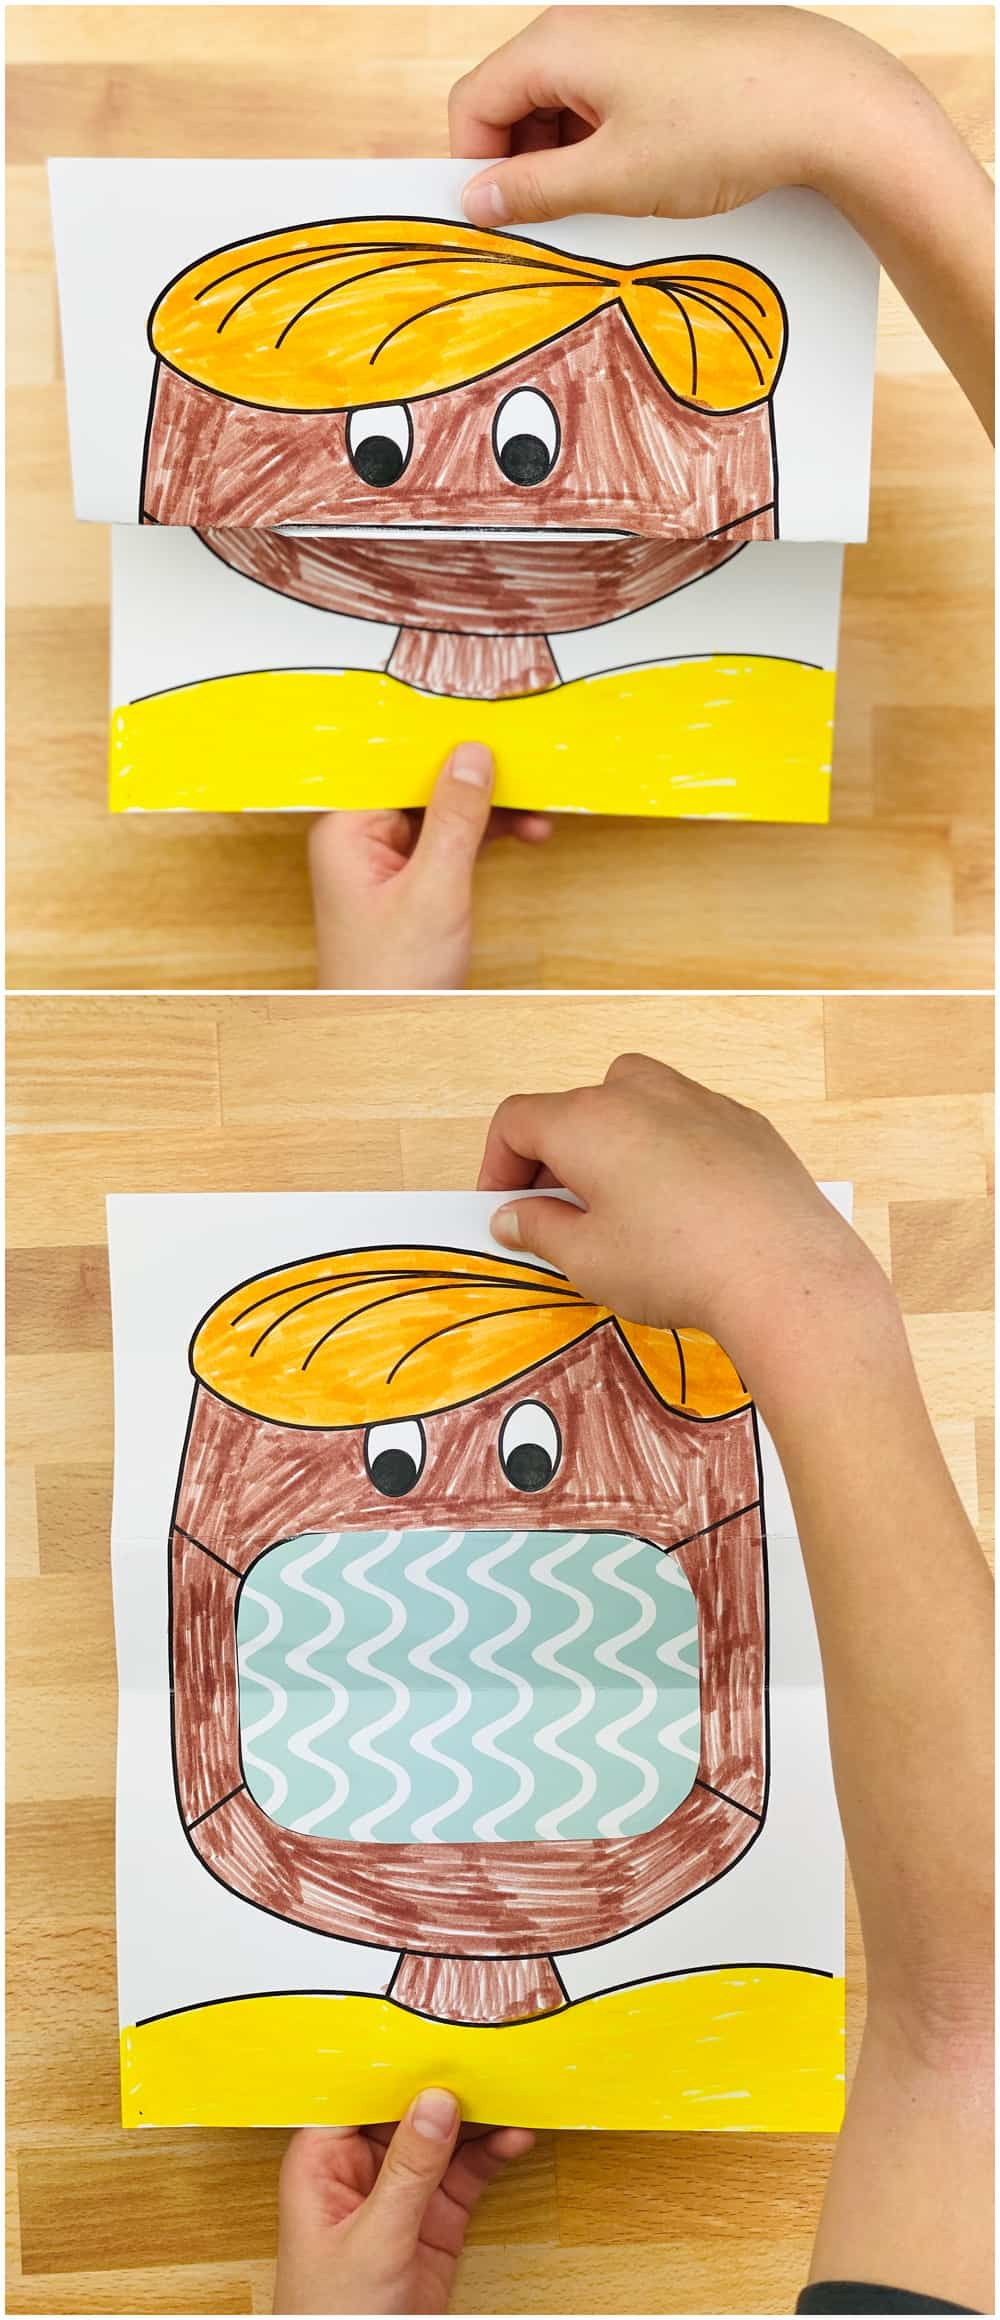 coloring art project for kids, filling in mask to decorate